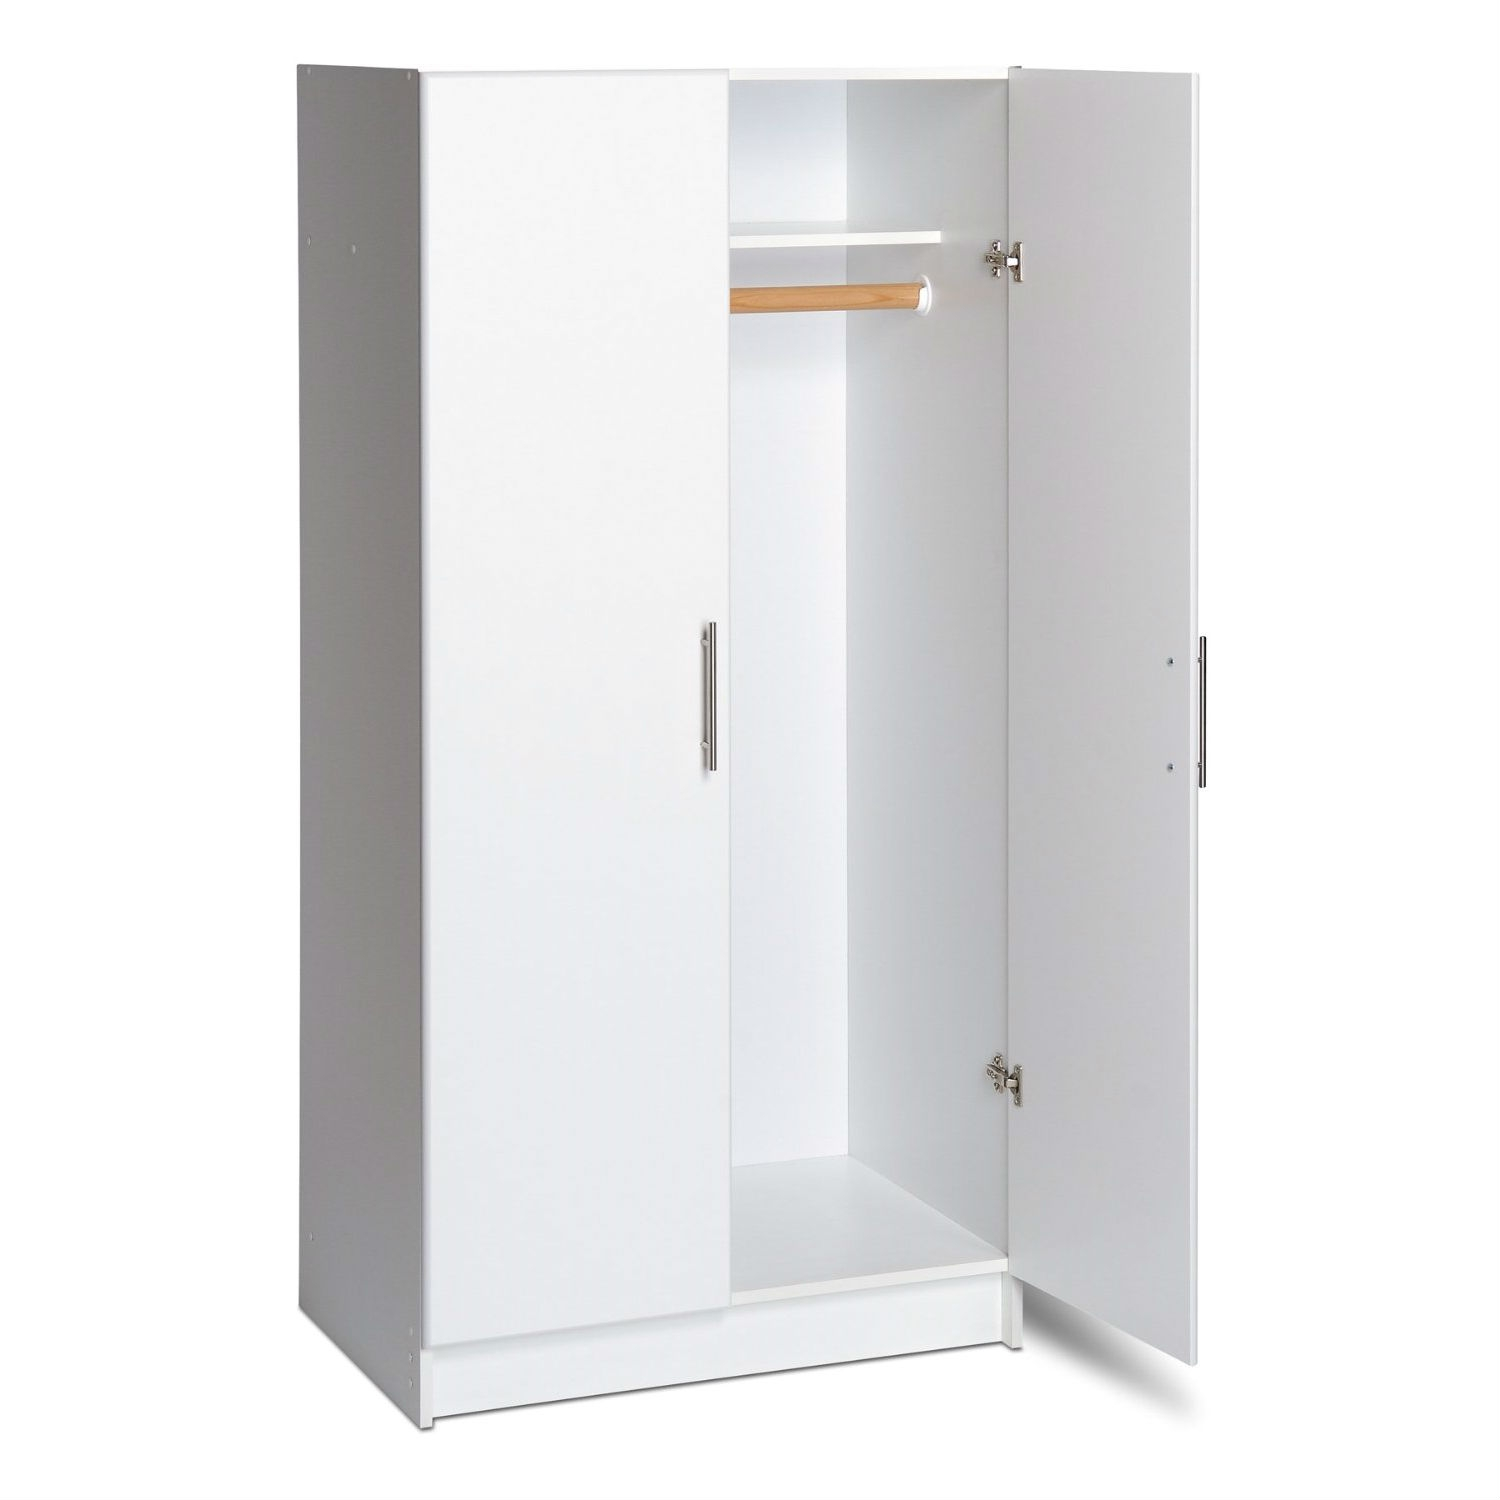 armoire cost wardrobe affordable black organizer tcs small ikea custom furniture closets white cabinet california bedroom closet